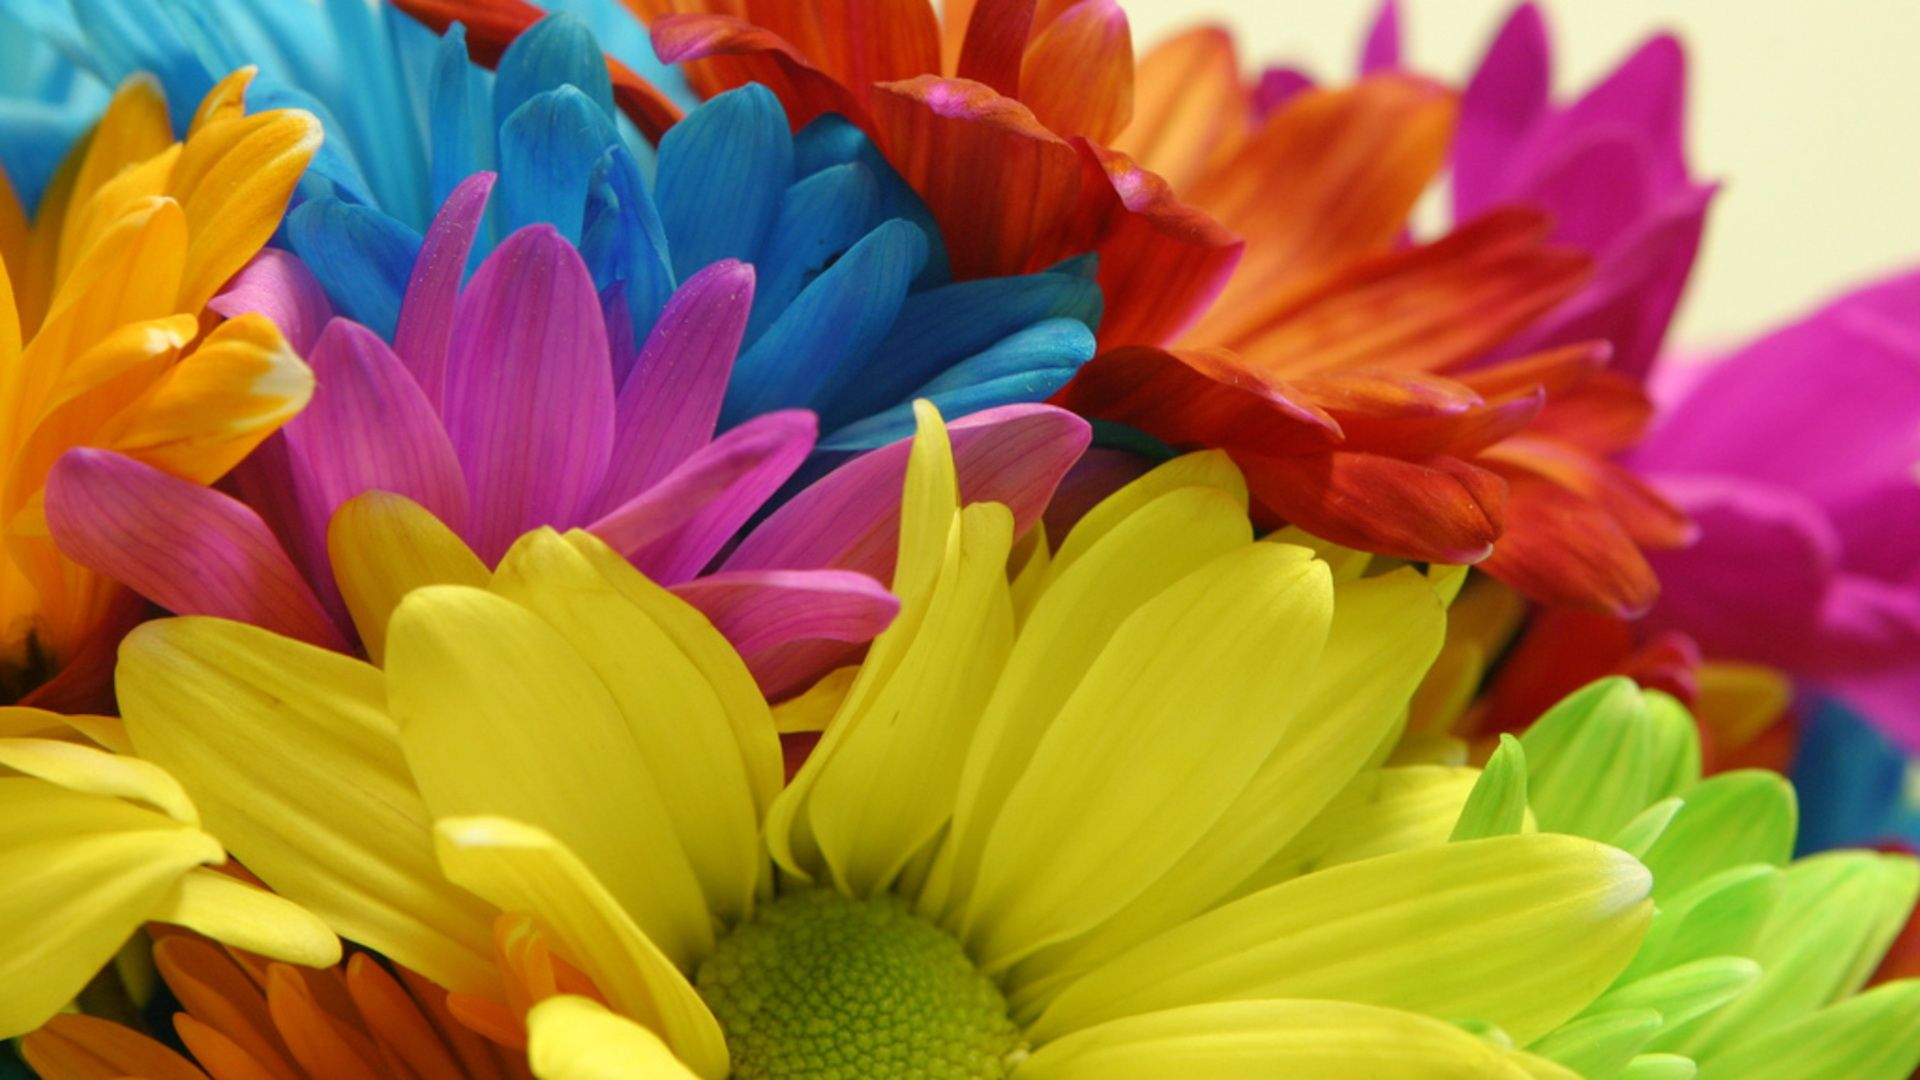 Rainbow daiseys colorfulflowerspictures colorful daisy flowers types of flowers daisies daisies are flowers that have white petals and yellow centersdaisies are very popular in flower arrangem izmirmasajfo